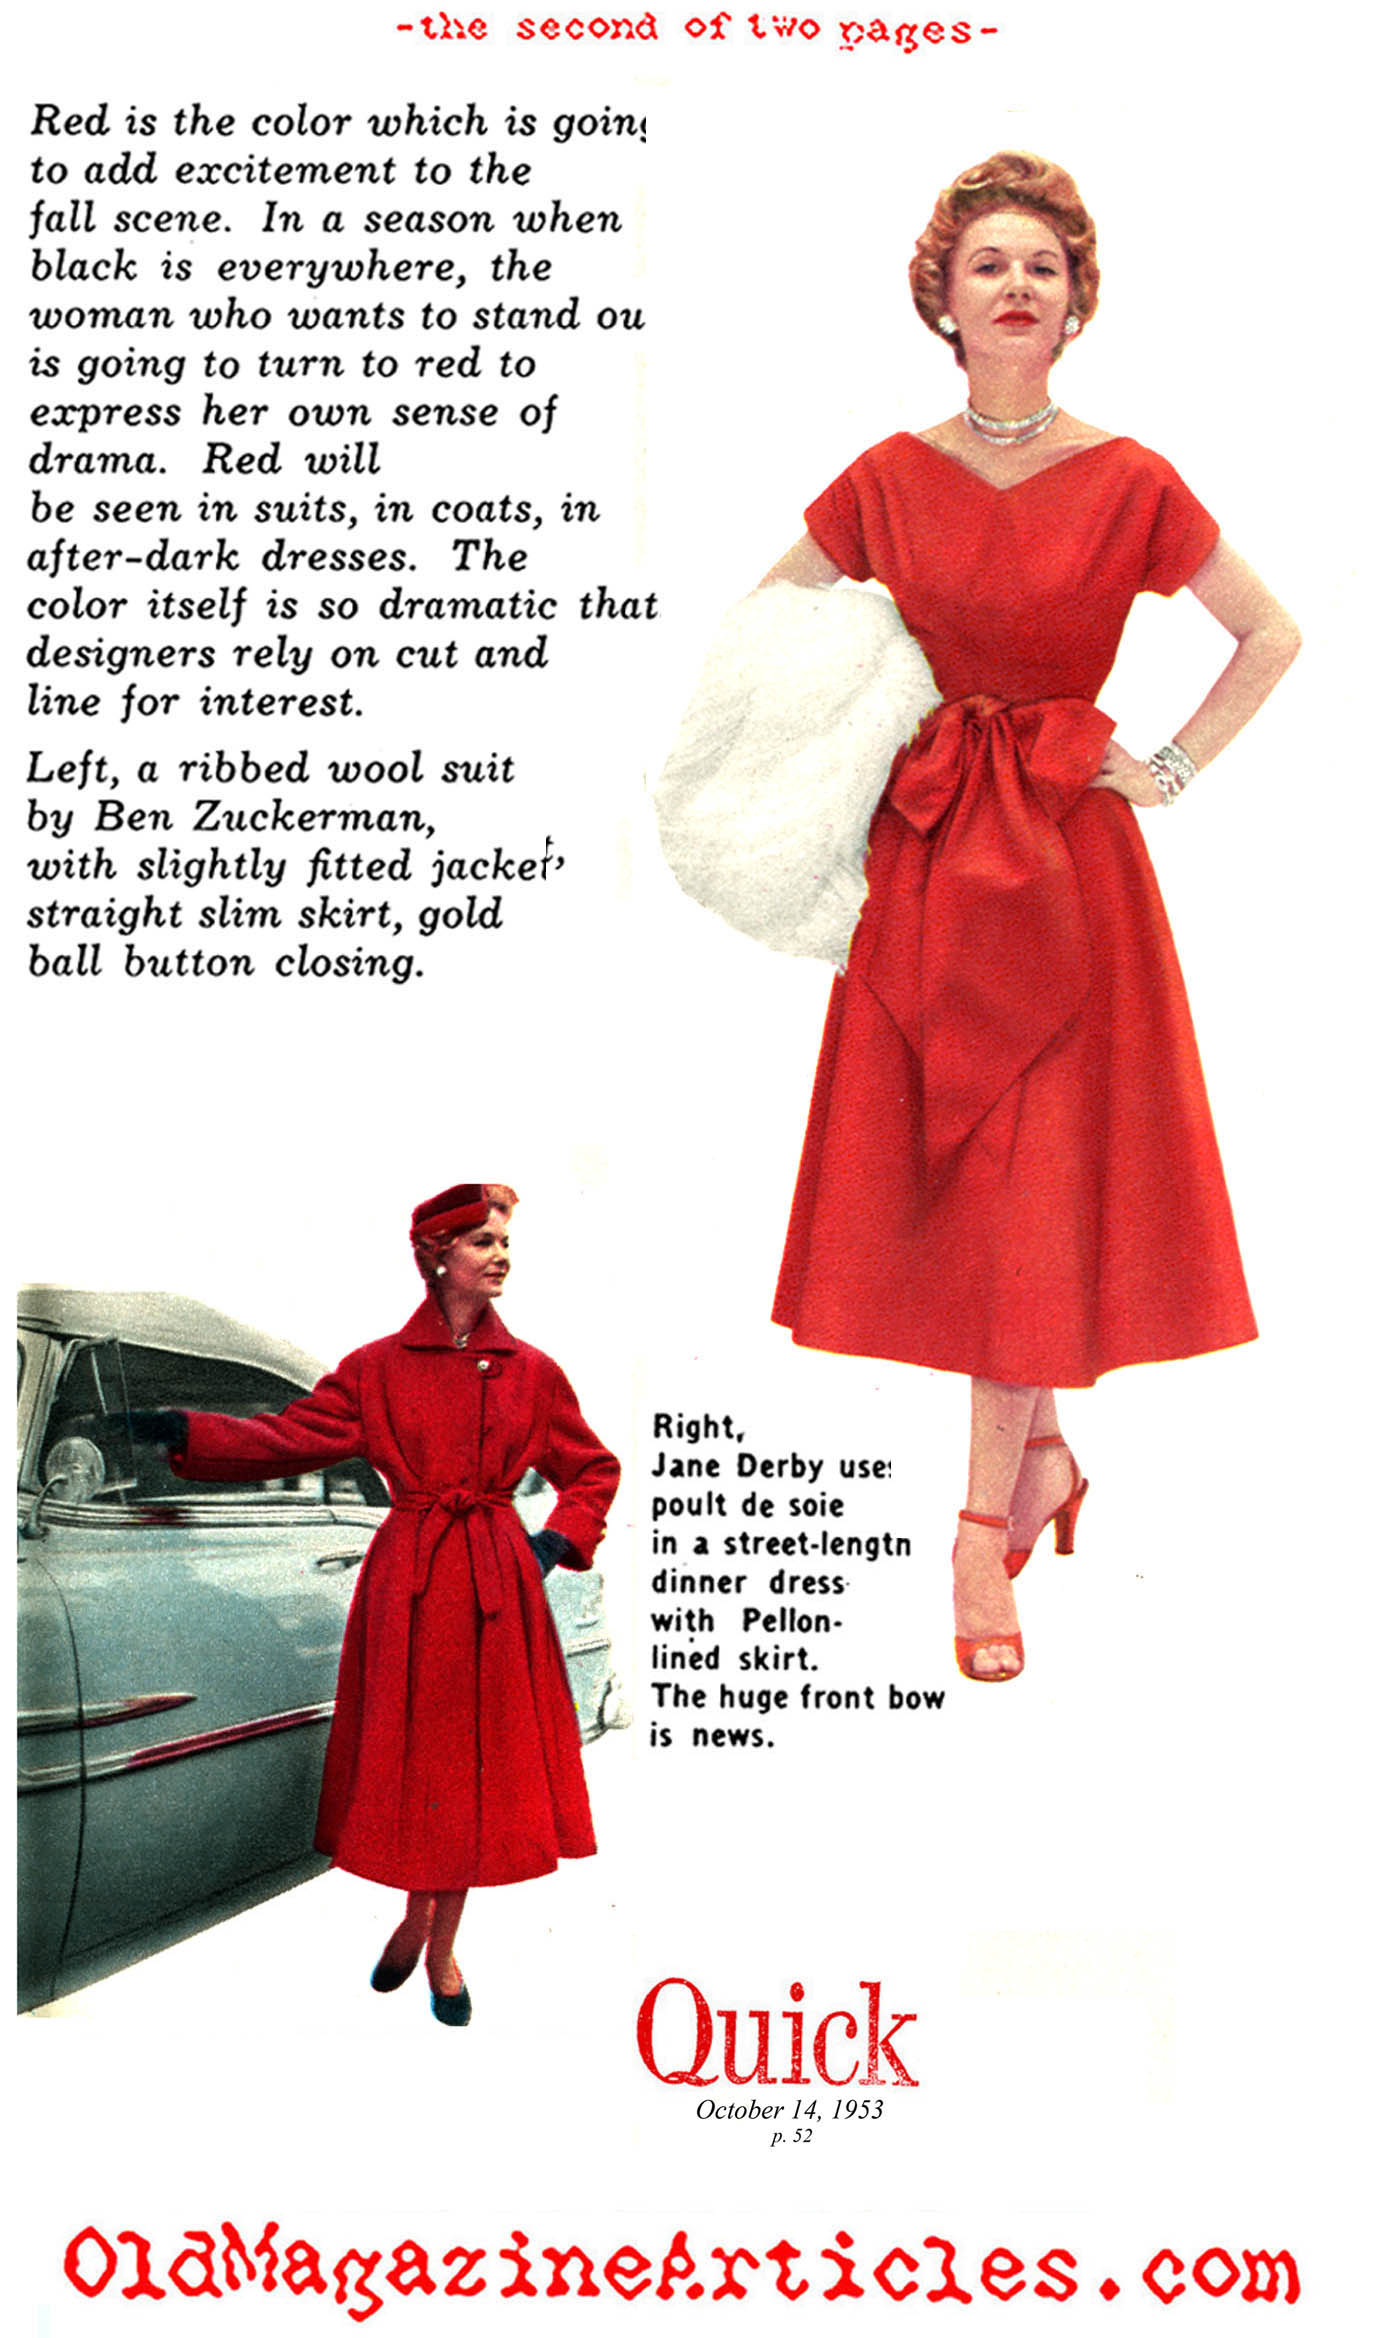 1950S FASHION COLOURS,COLORS IN 50S FASHION,RED IN FIFTIES